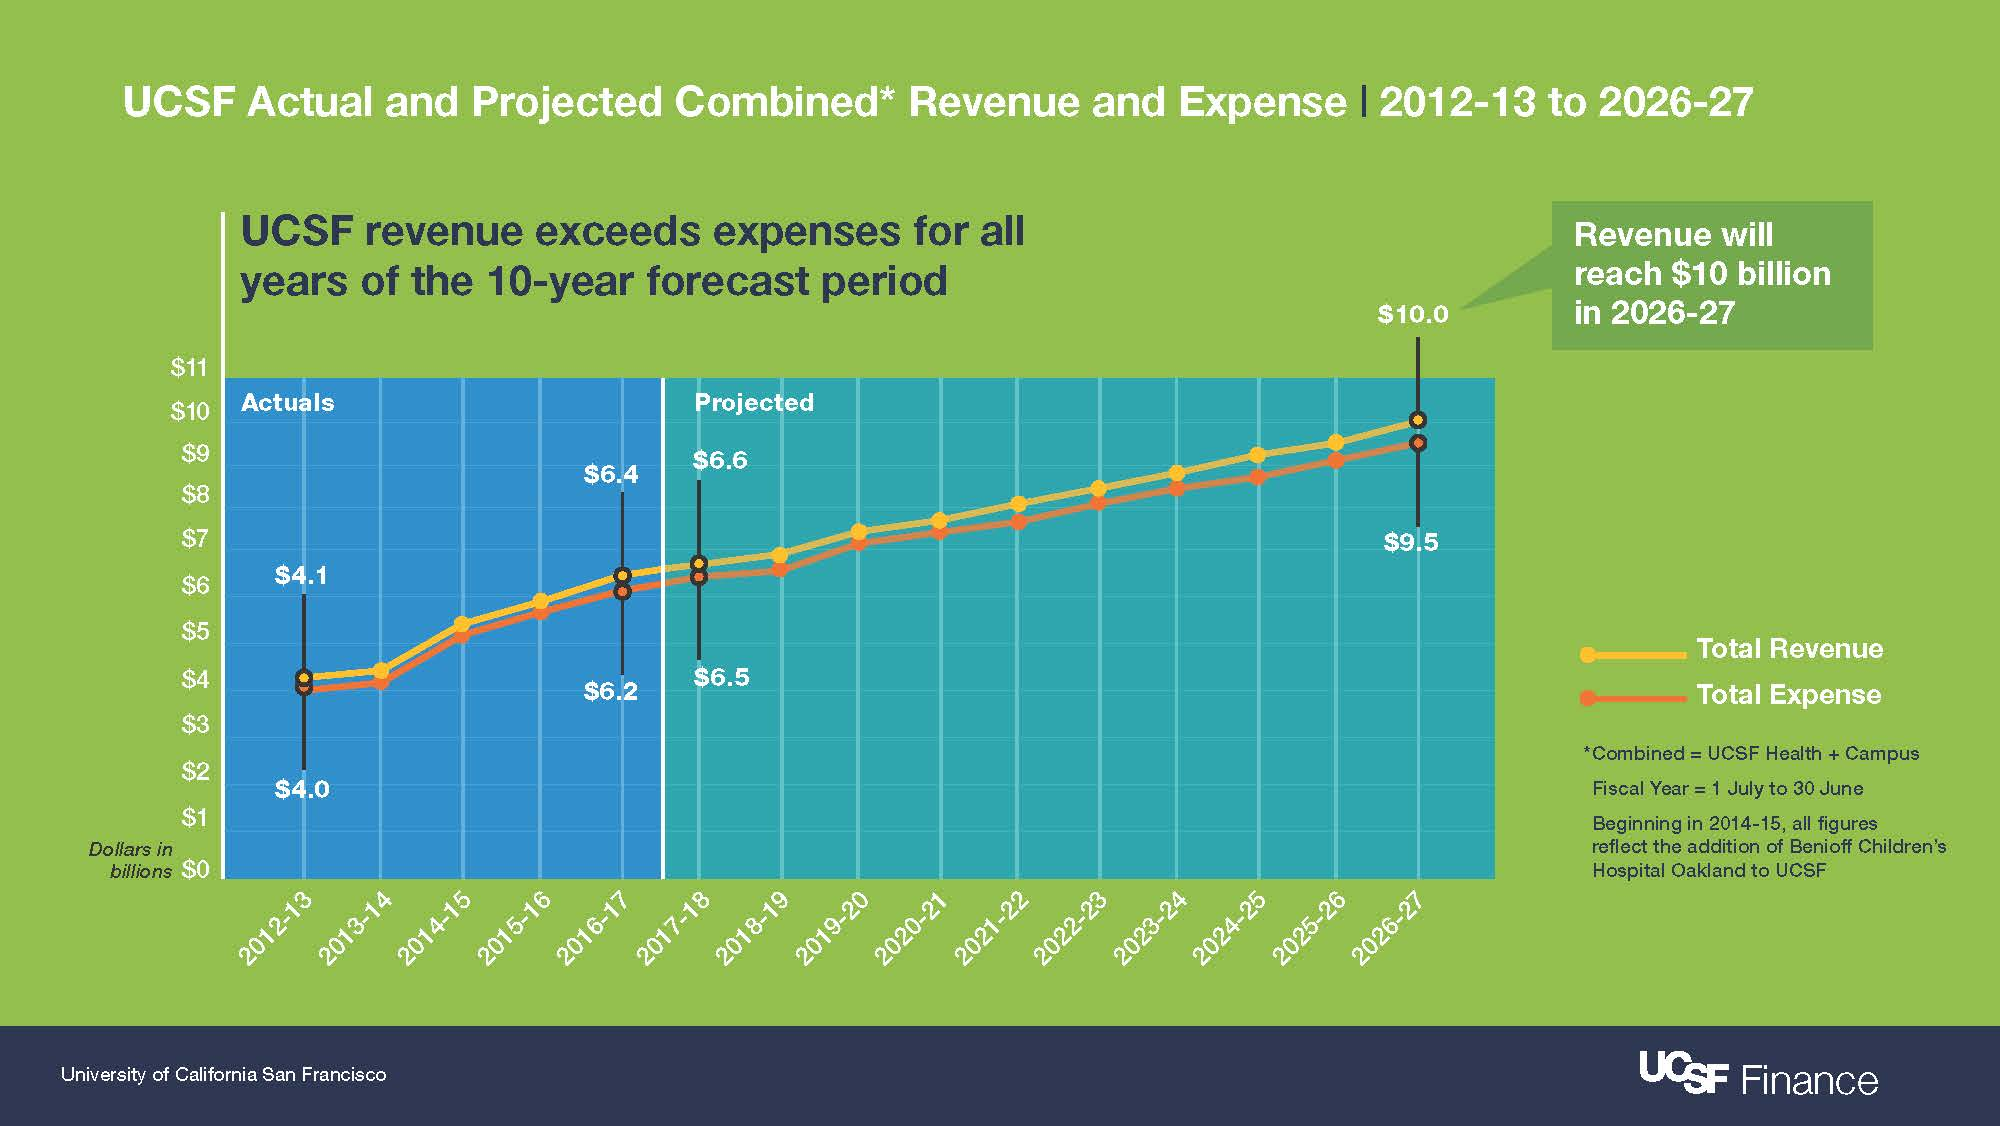 Graphic highlighting UCSF's revenue will reach $10 Billion in the 2026-27 fiscal year.